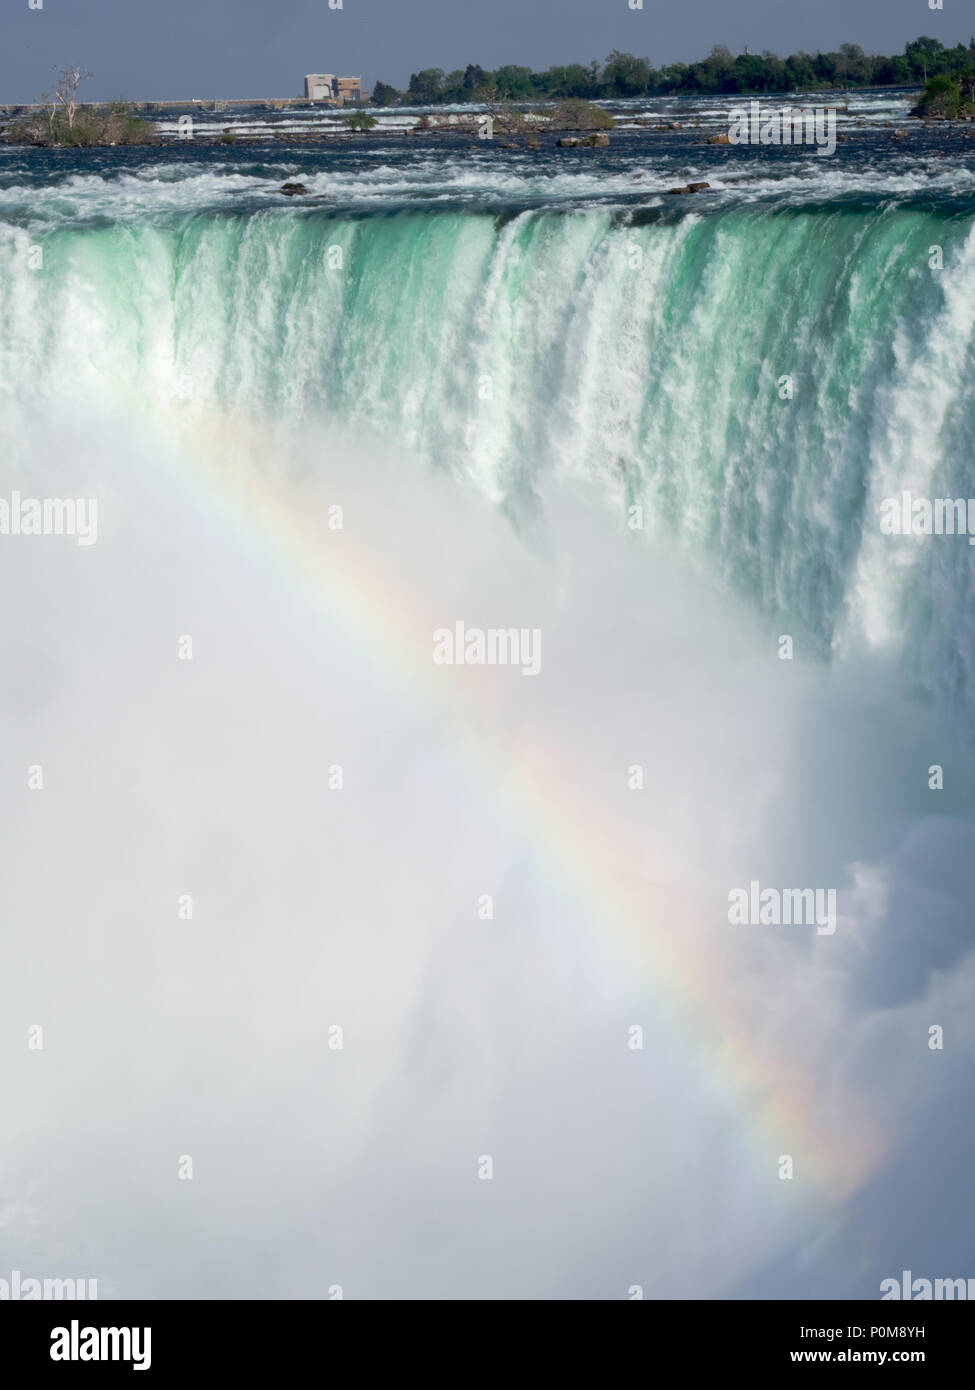 Niagara Horseshoe falls with a rainbow formed by falls. - Stock Image